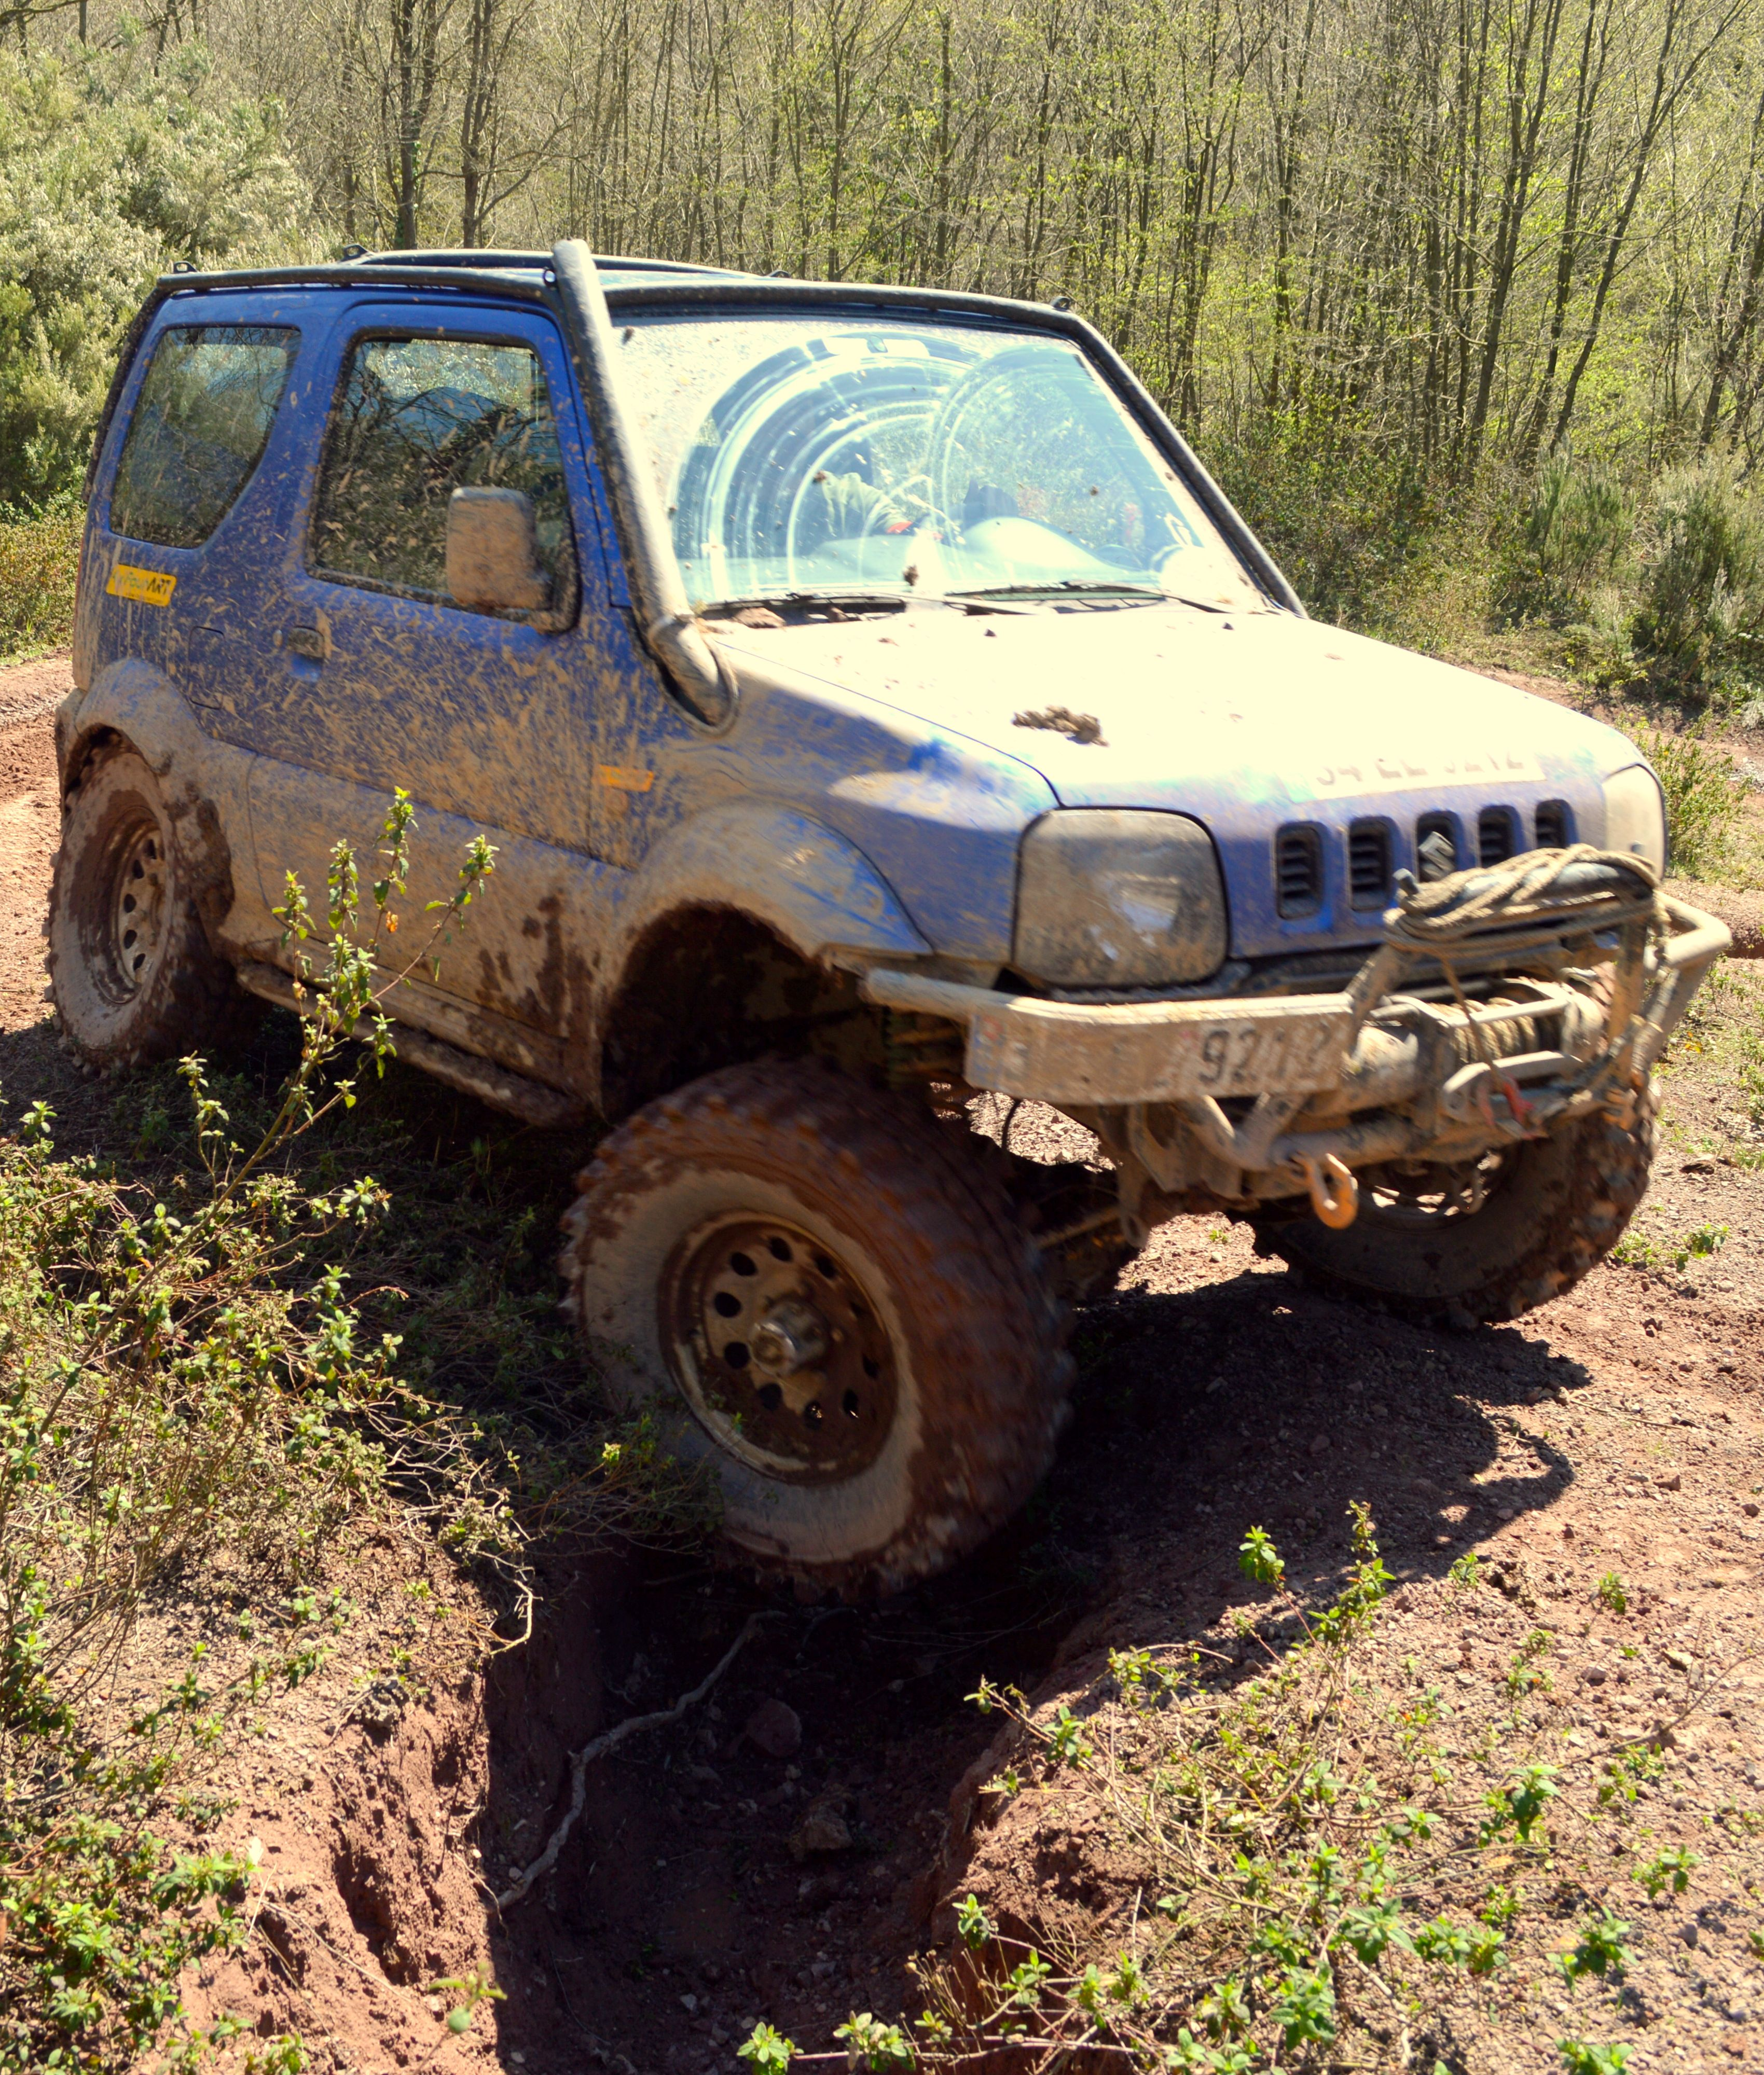 suzuki jimny off road off road pinterest suzuki. Black Bedroom Furniture Sets. Home Design Ideas